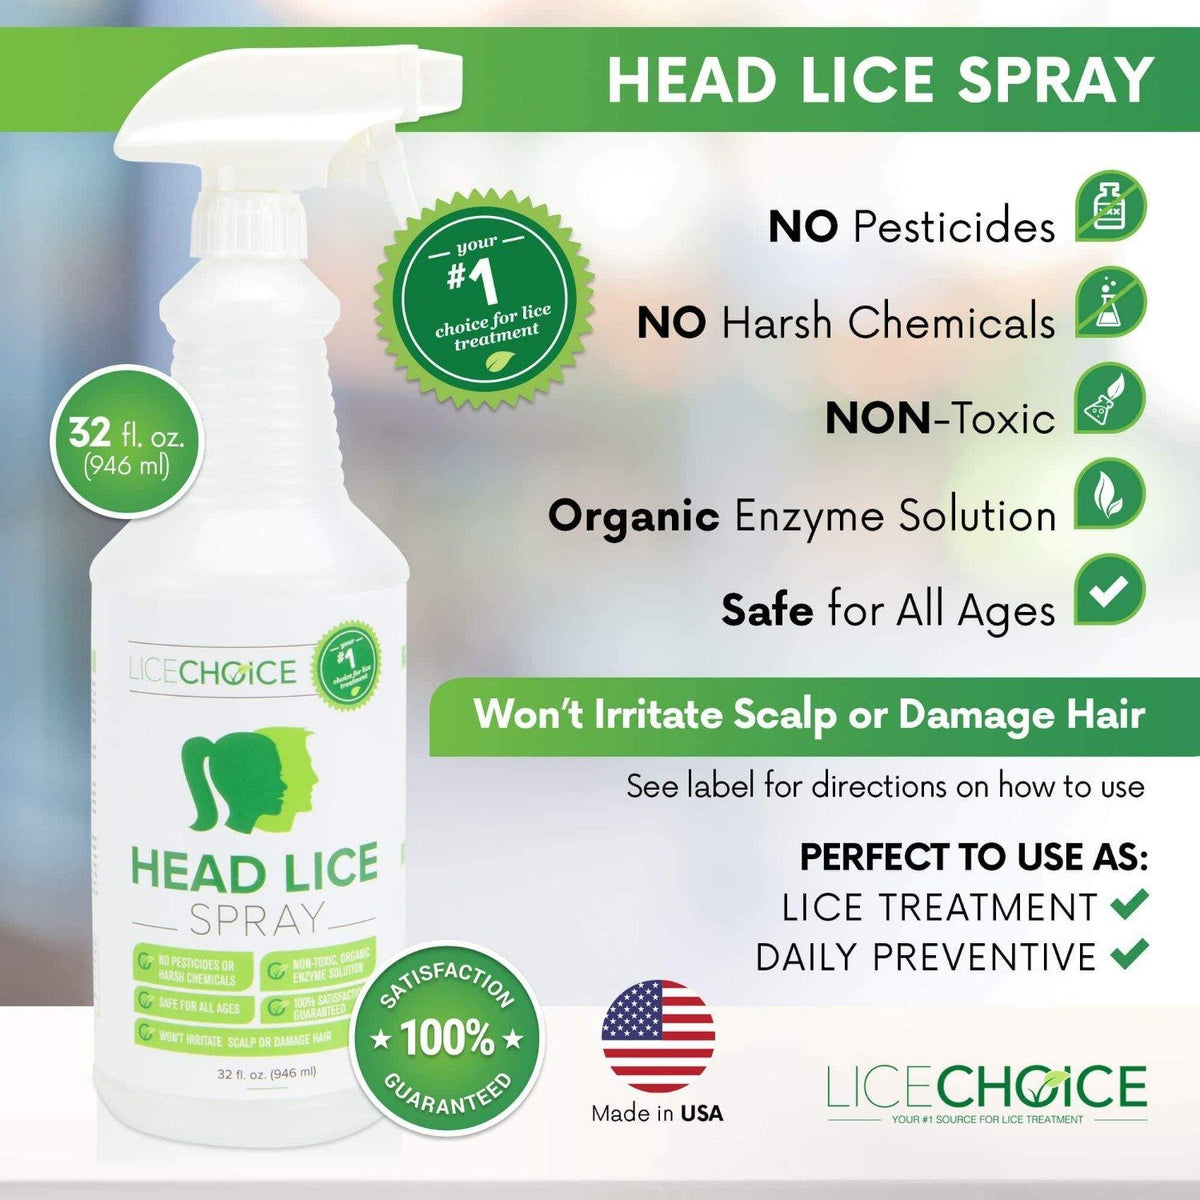 Lice Choice Head Lice Treatment Spray with no pesticides, harsh chemicals, non-toxic, and is safe for all ages.